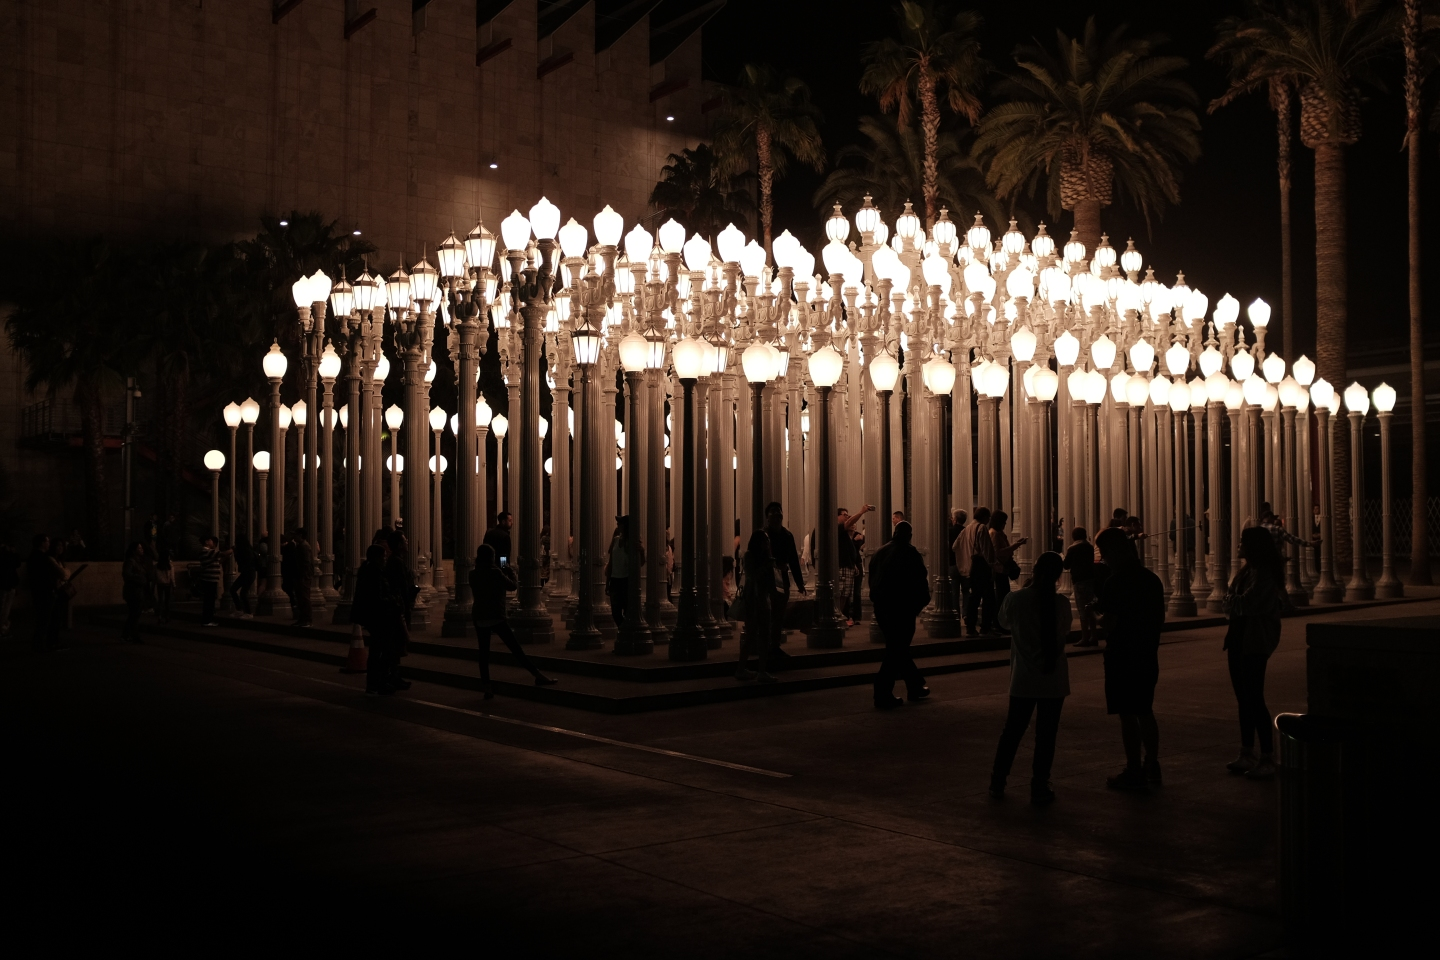 Art Installation in Los Angeles, California – Visuelles Logbuch